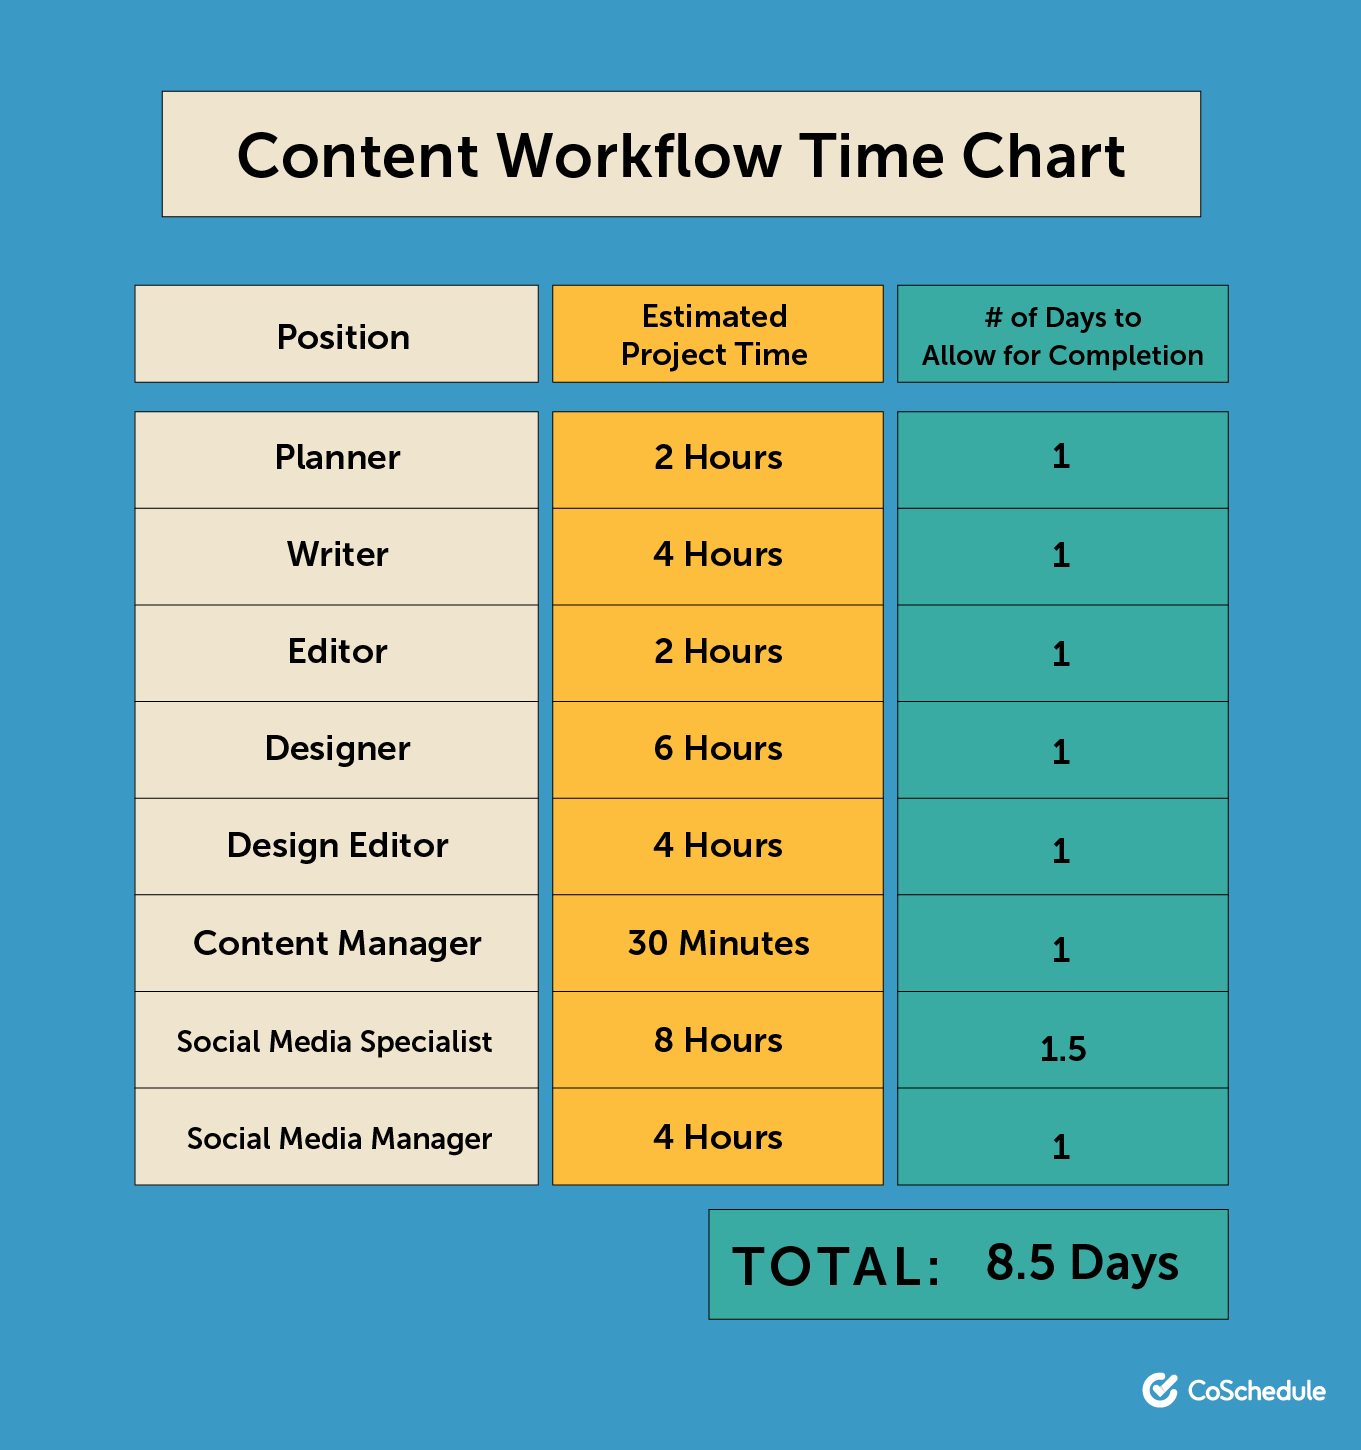 Content workflow time chart